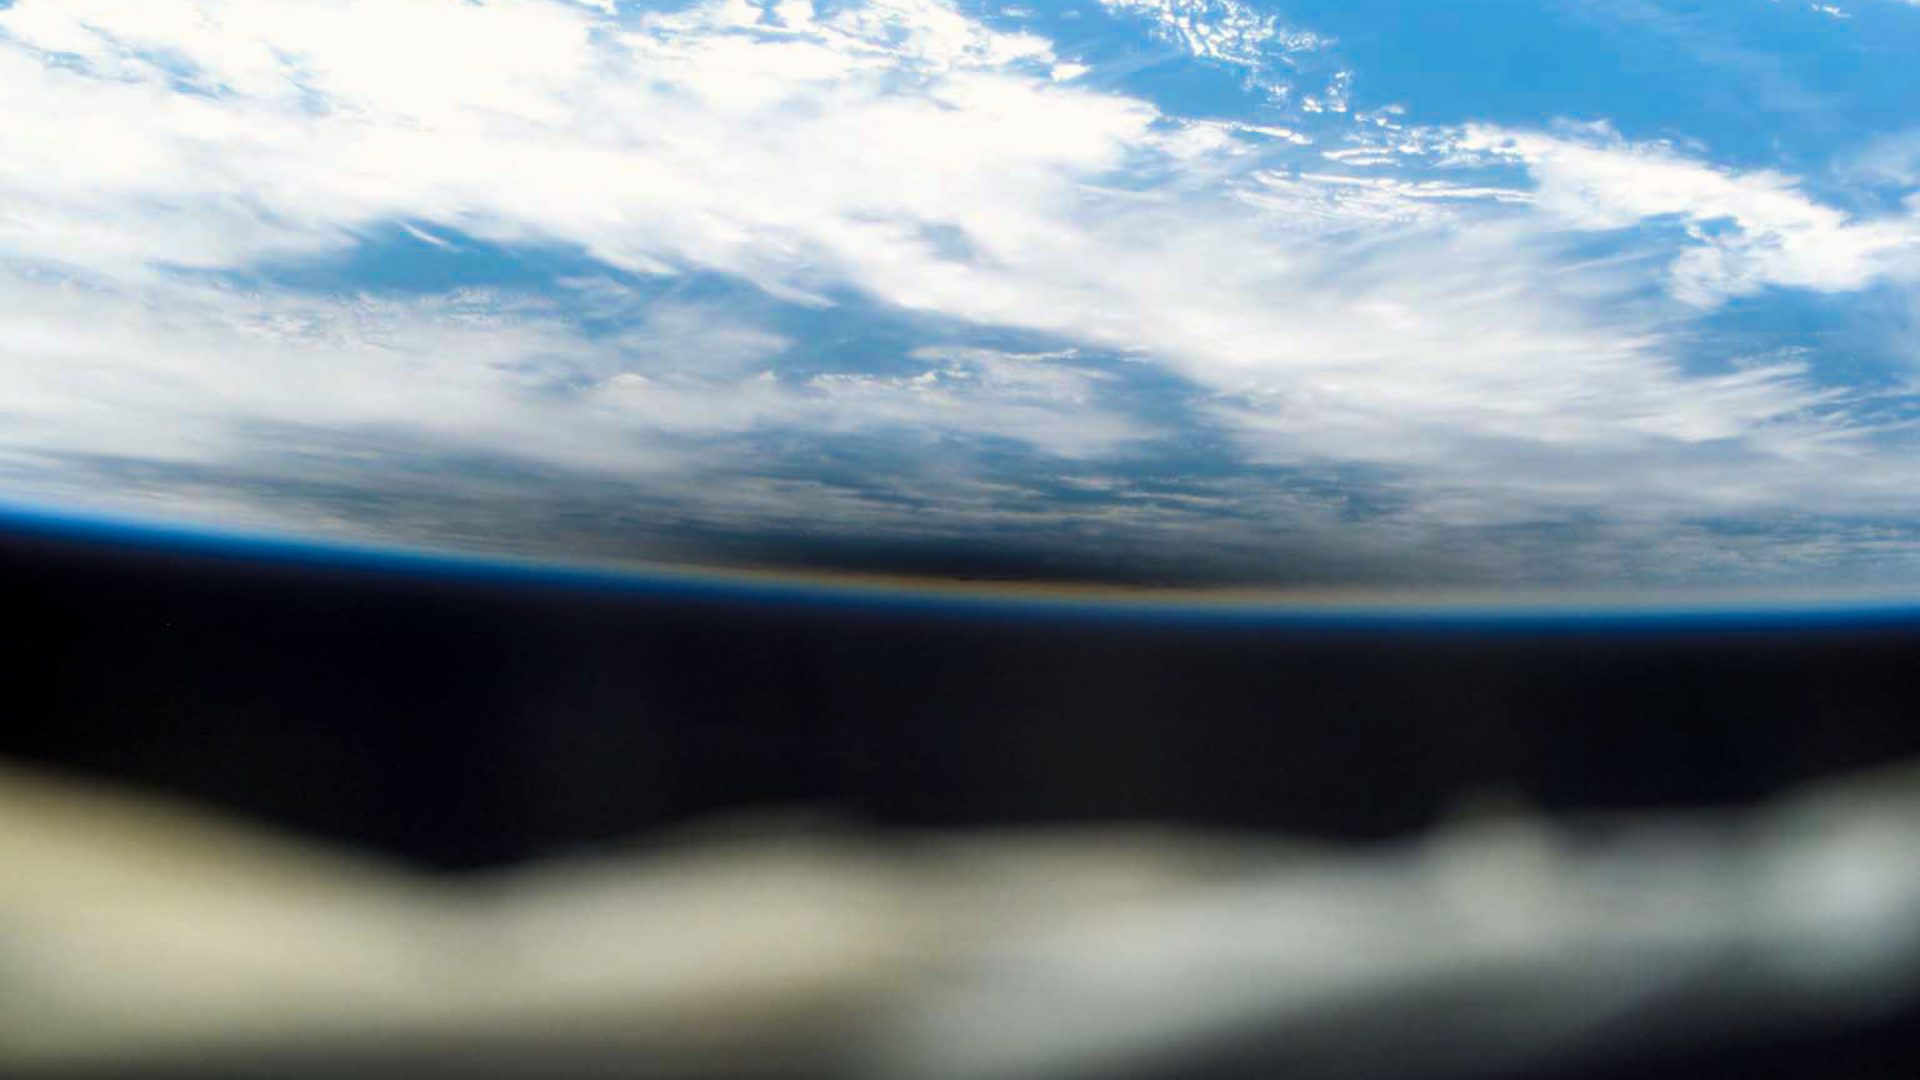 International Space Station crew capture the shadow (the dark area) cast by the moon during a total solar eclipse.